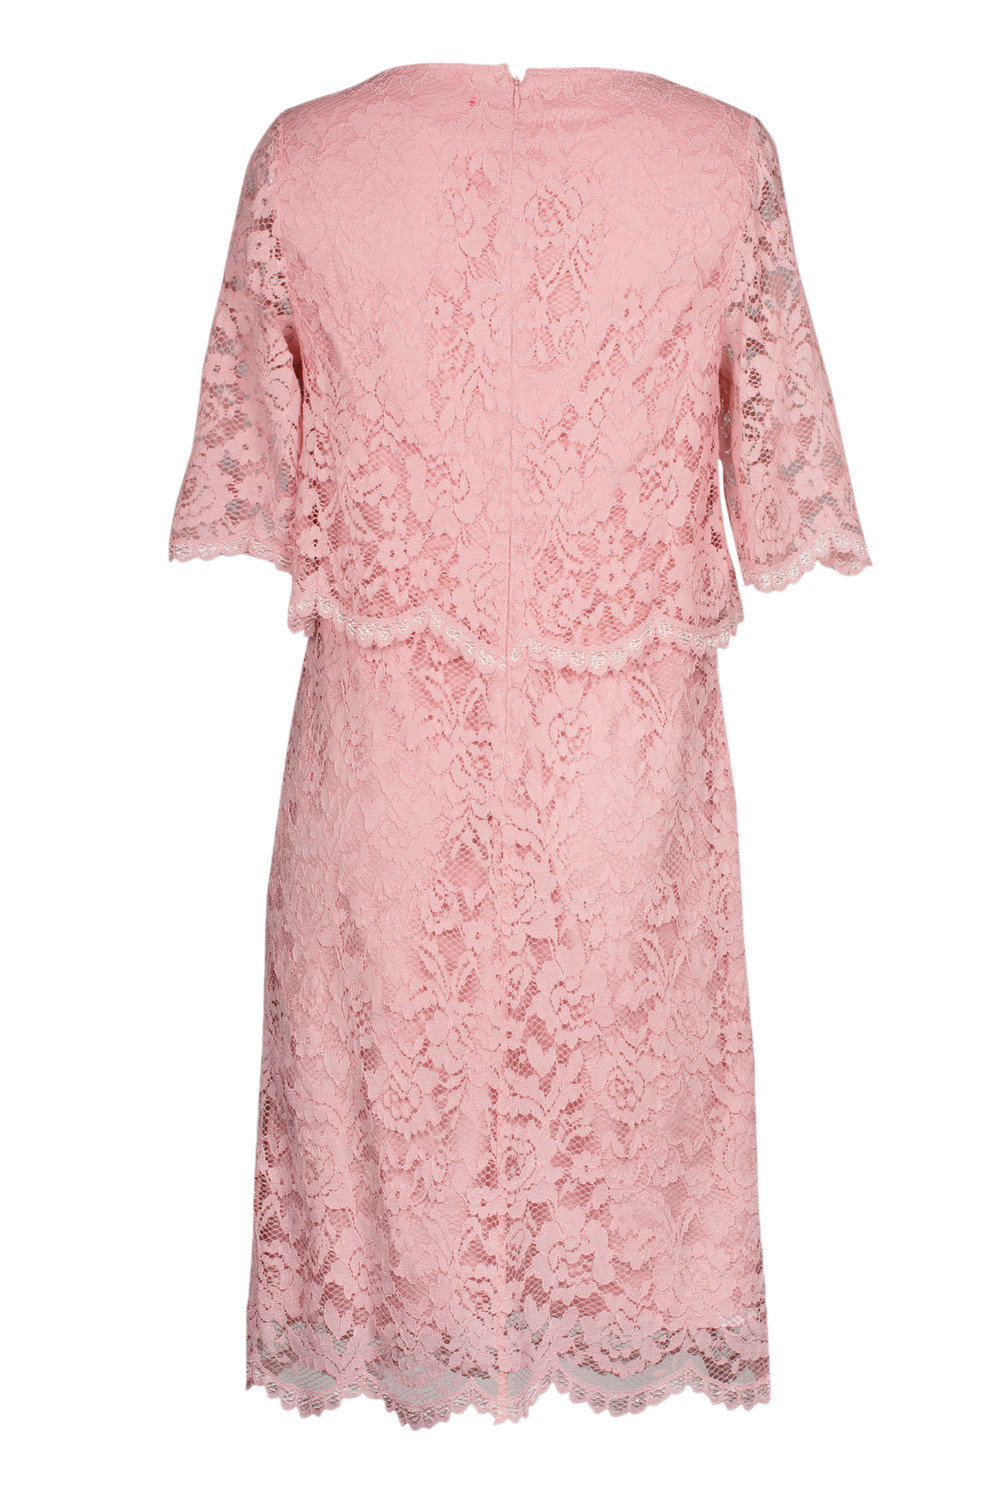 5cf2e208bd Together Lace Overlay Dress Online